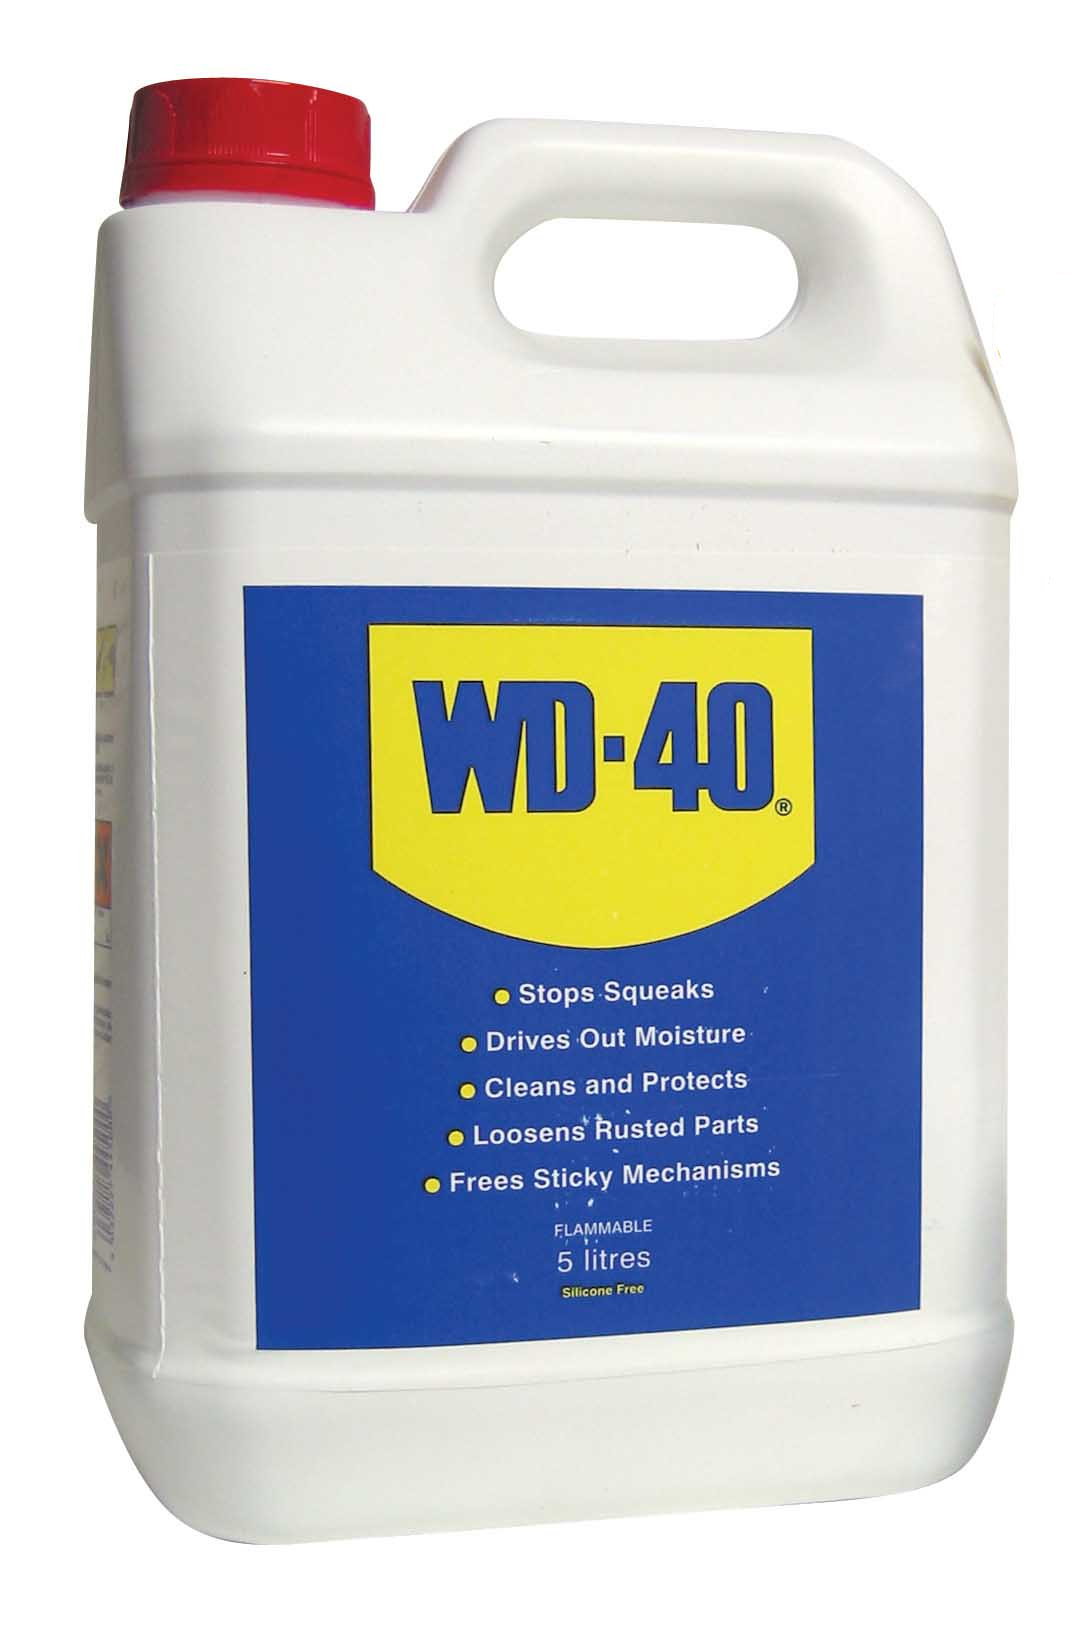 wd40 5 litre bottle wd 40 maintenance chain lubricant oil. Black Bedroom Furniture Sets. Home Design Ideas